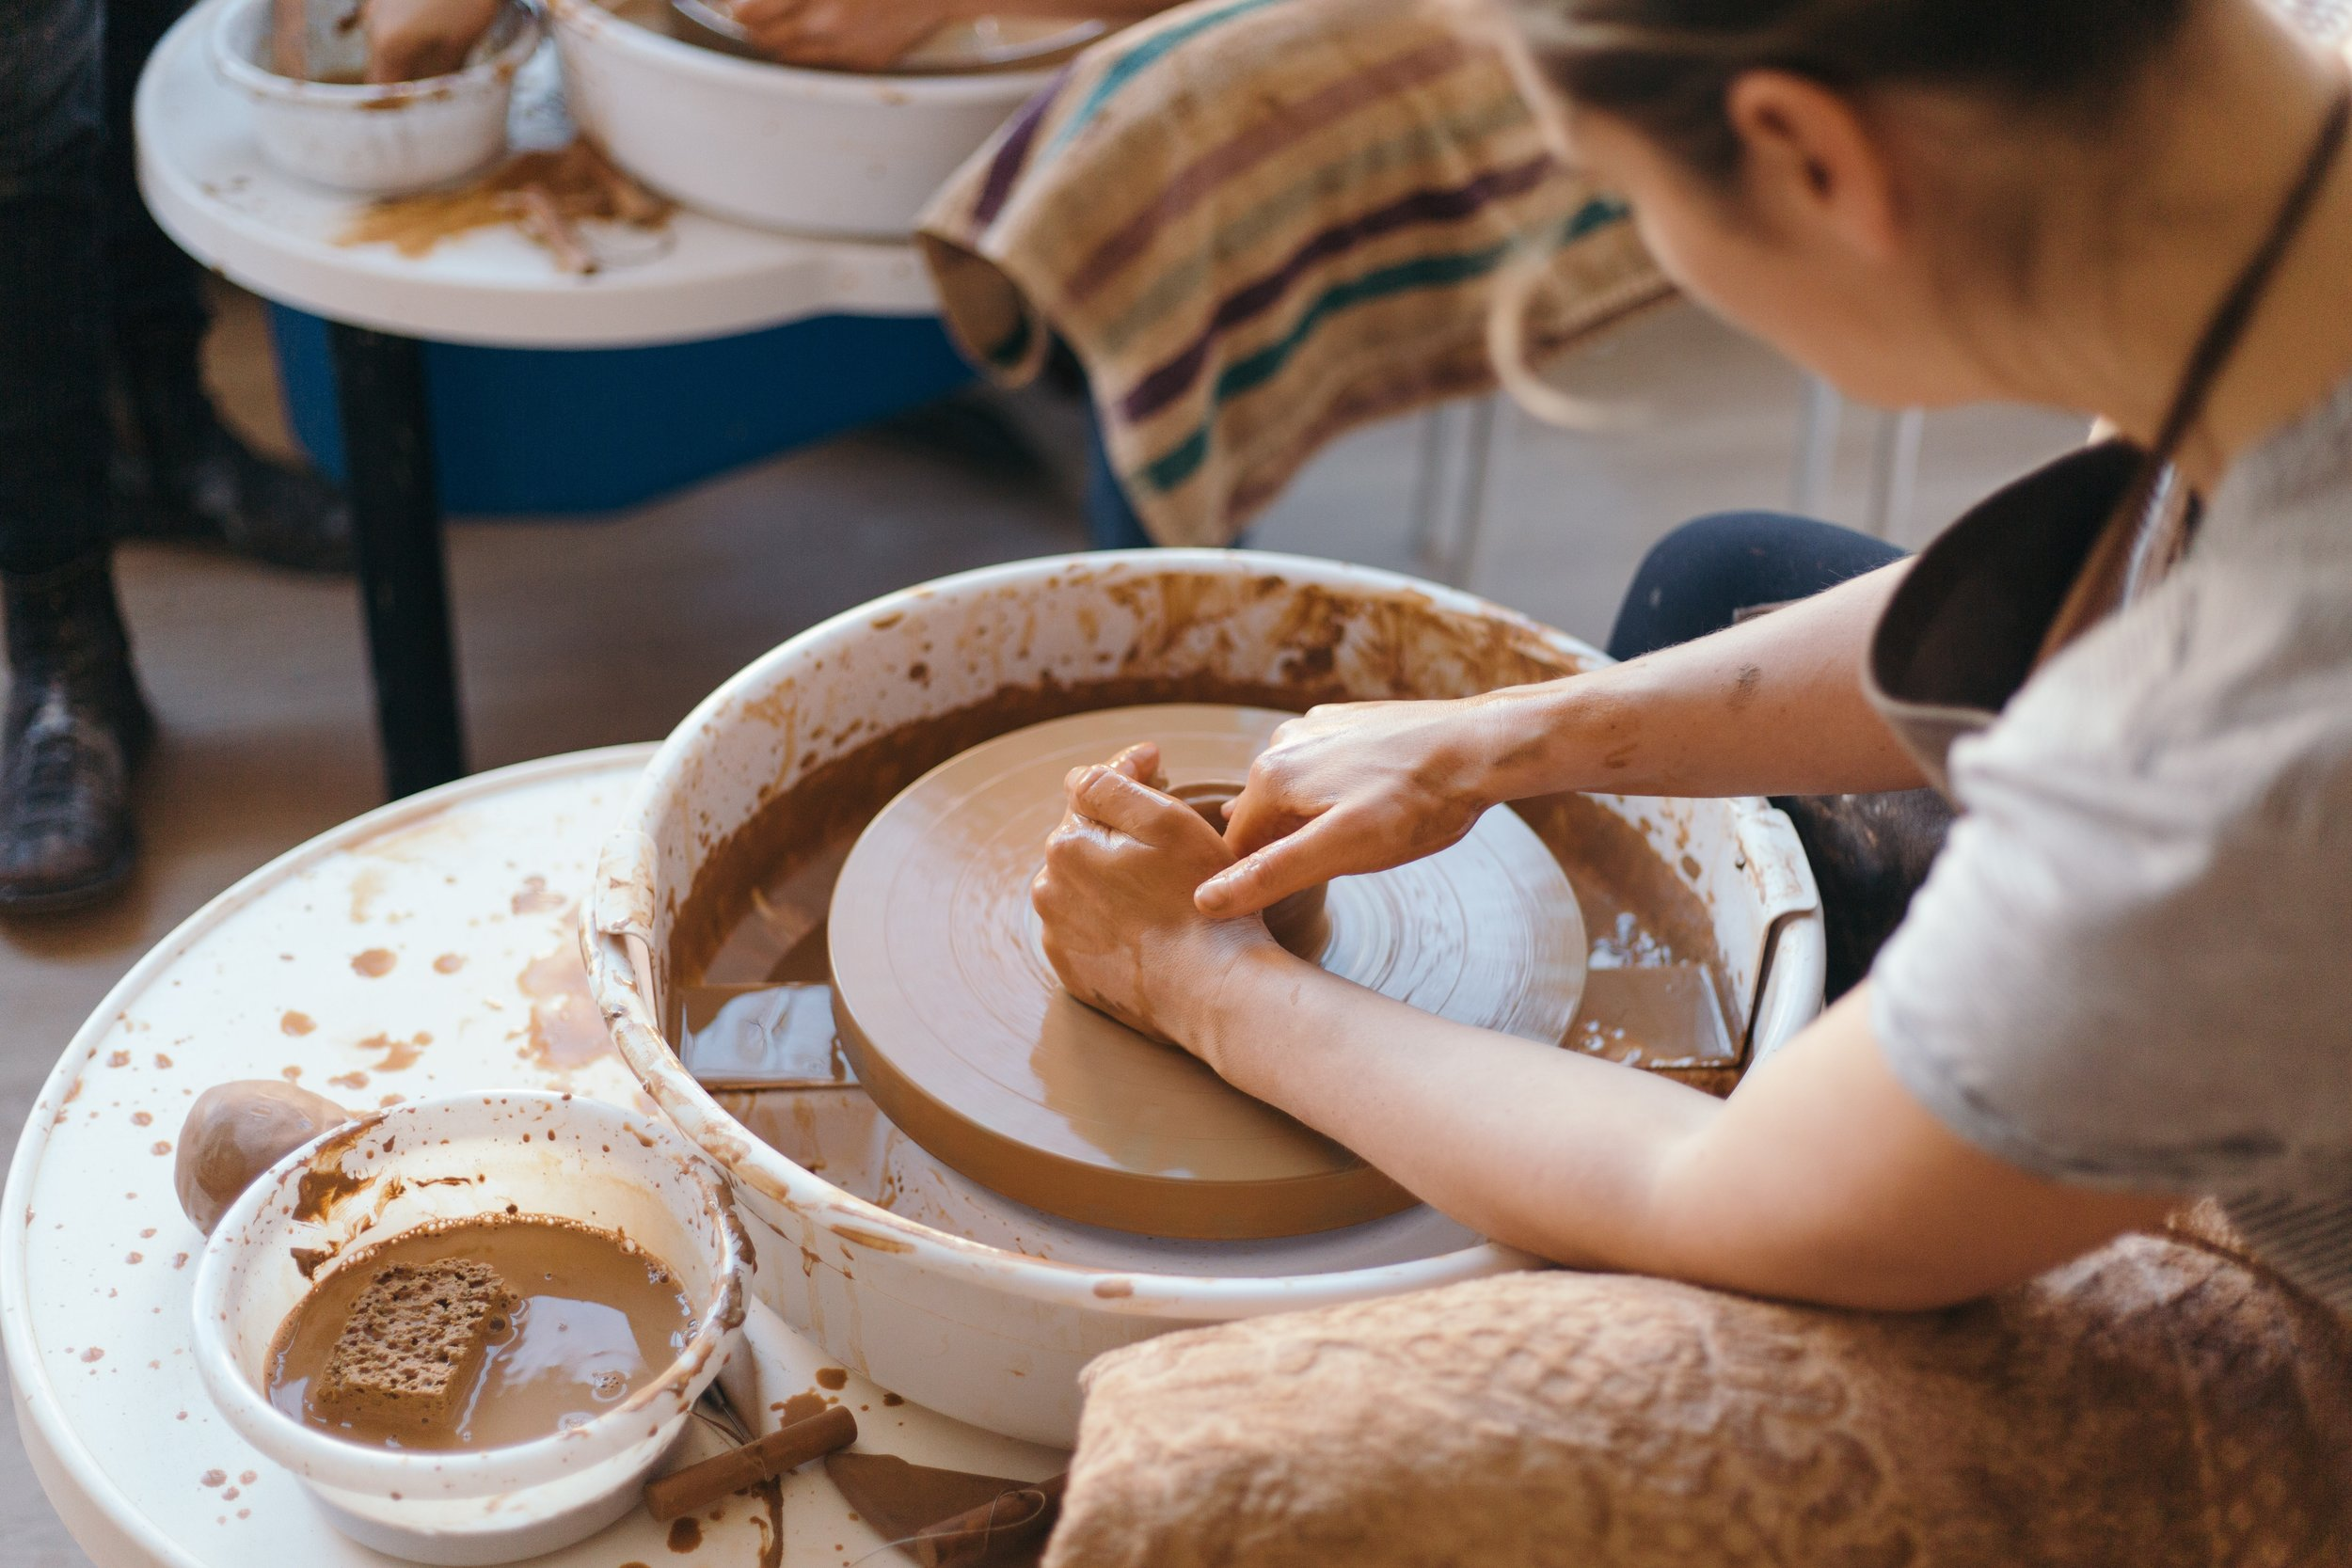 Get Hands On - Honor Mom's artistic side and take her for a pottery, painting or glass-blowing class. Not only will you and Mom get some quality time, but she will walk away with a beautiful keepsake from the day.